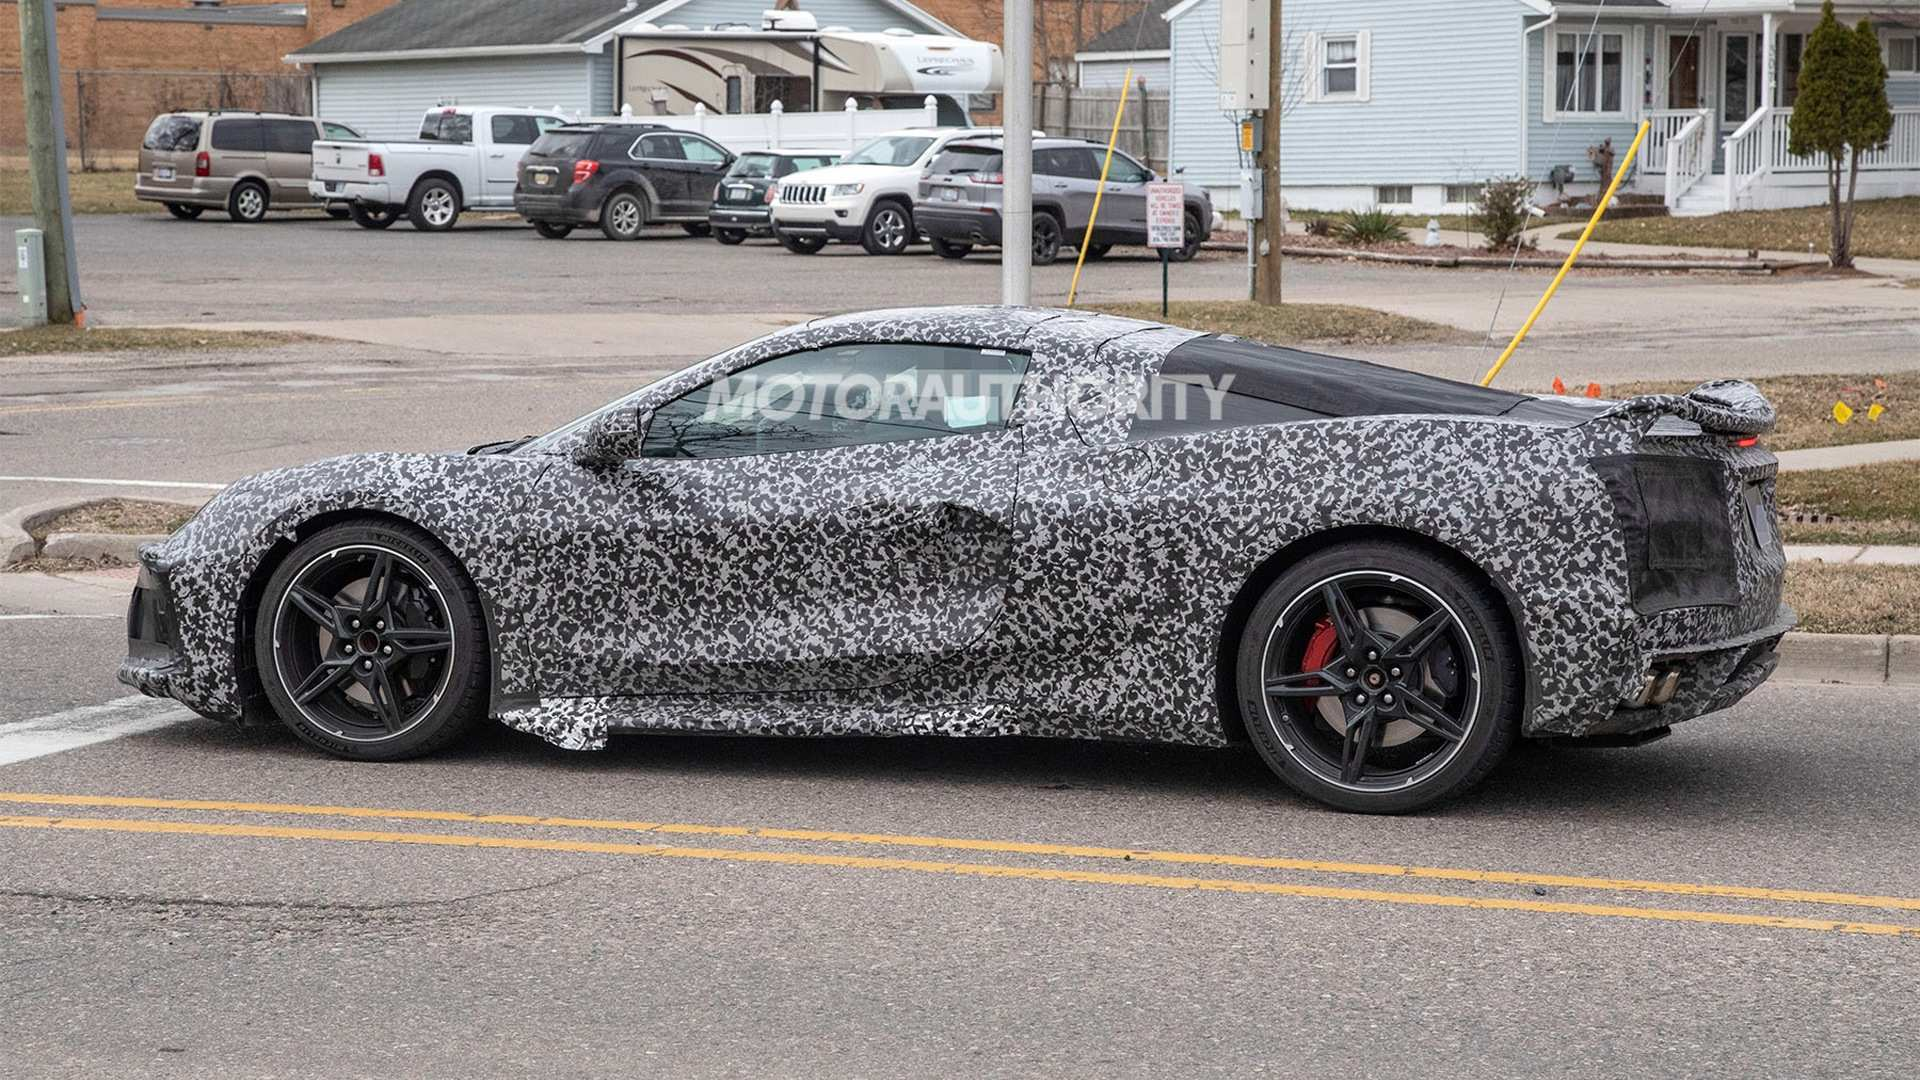 53 Best 2020 Chevrolet Corvette Video Specs